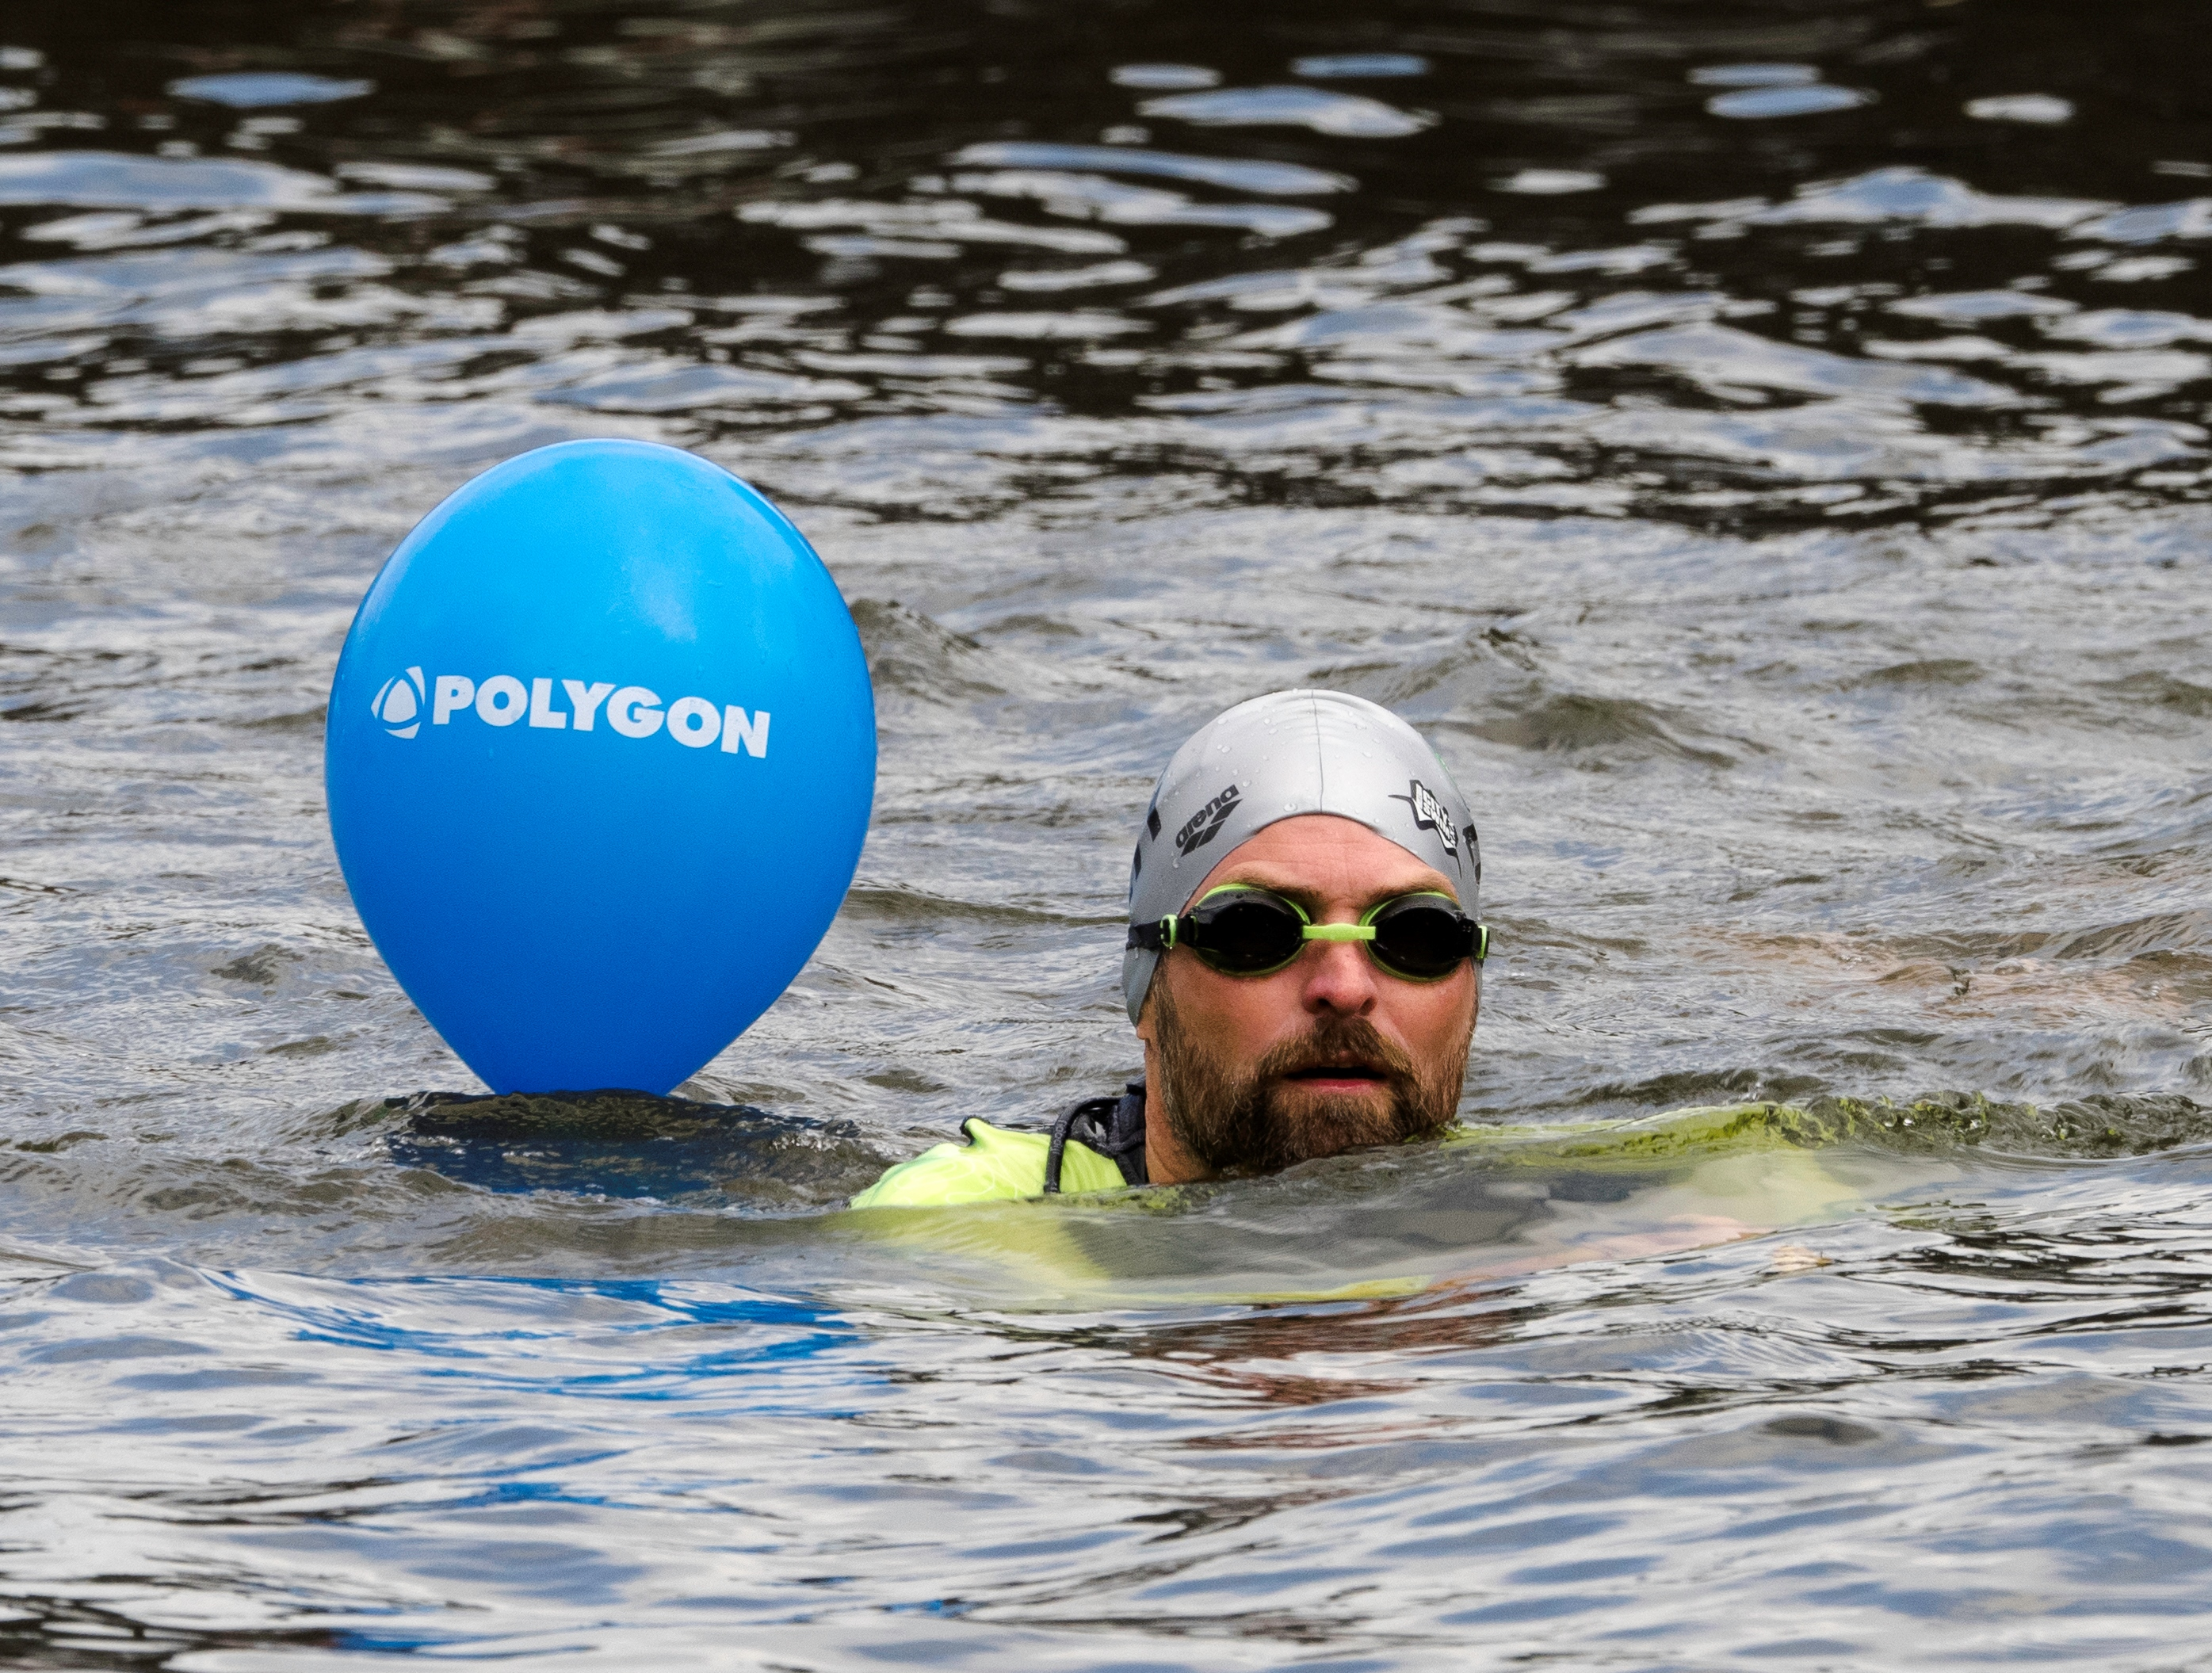 Polygon @amsterdam City Swim 2016 - Dick in gracht met polygon ballon